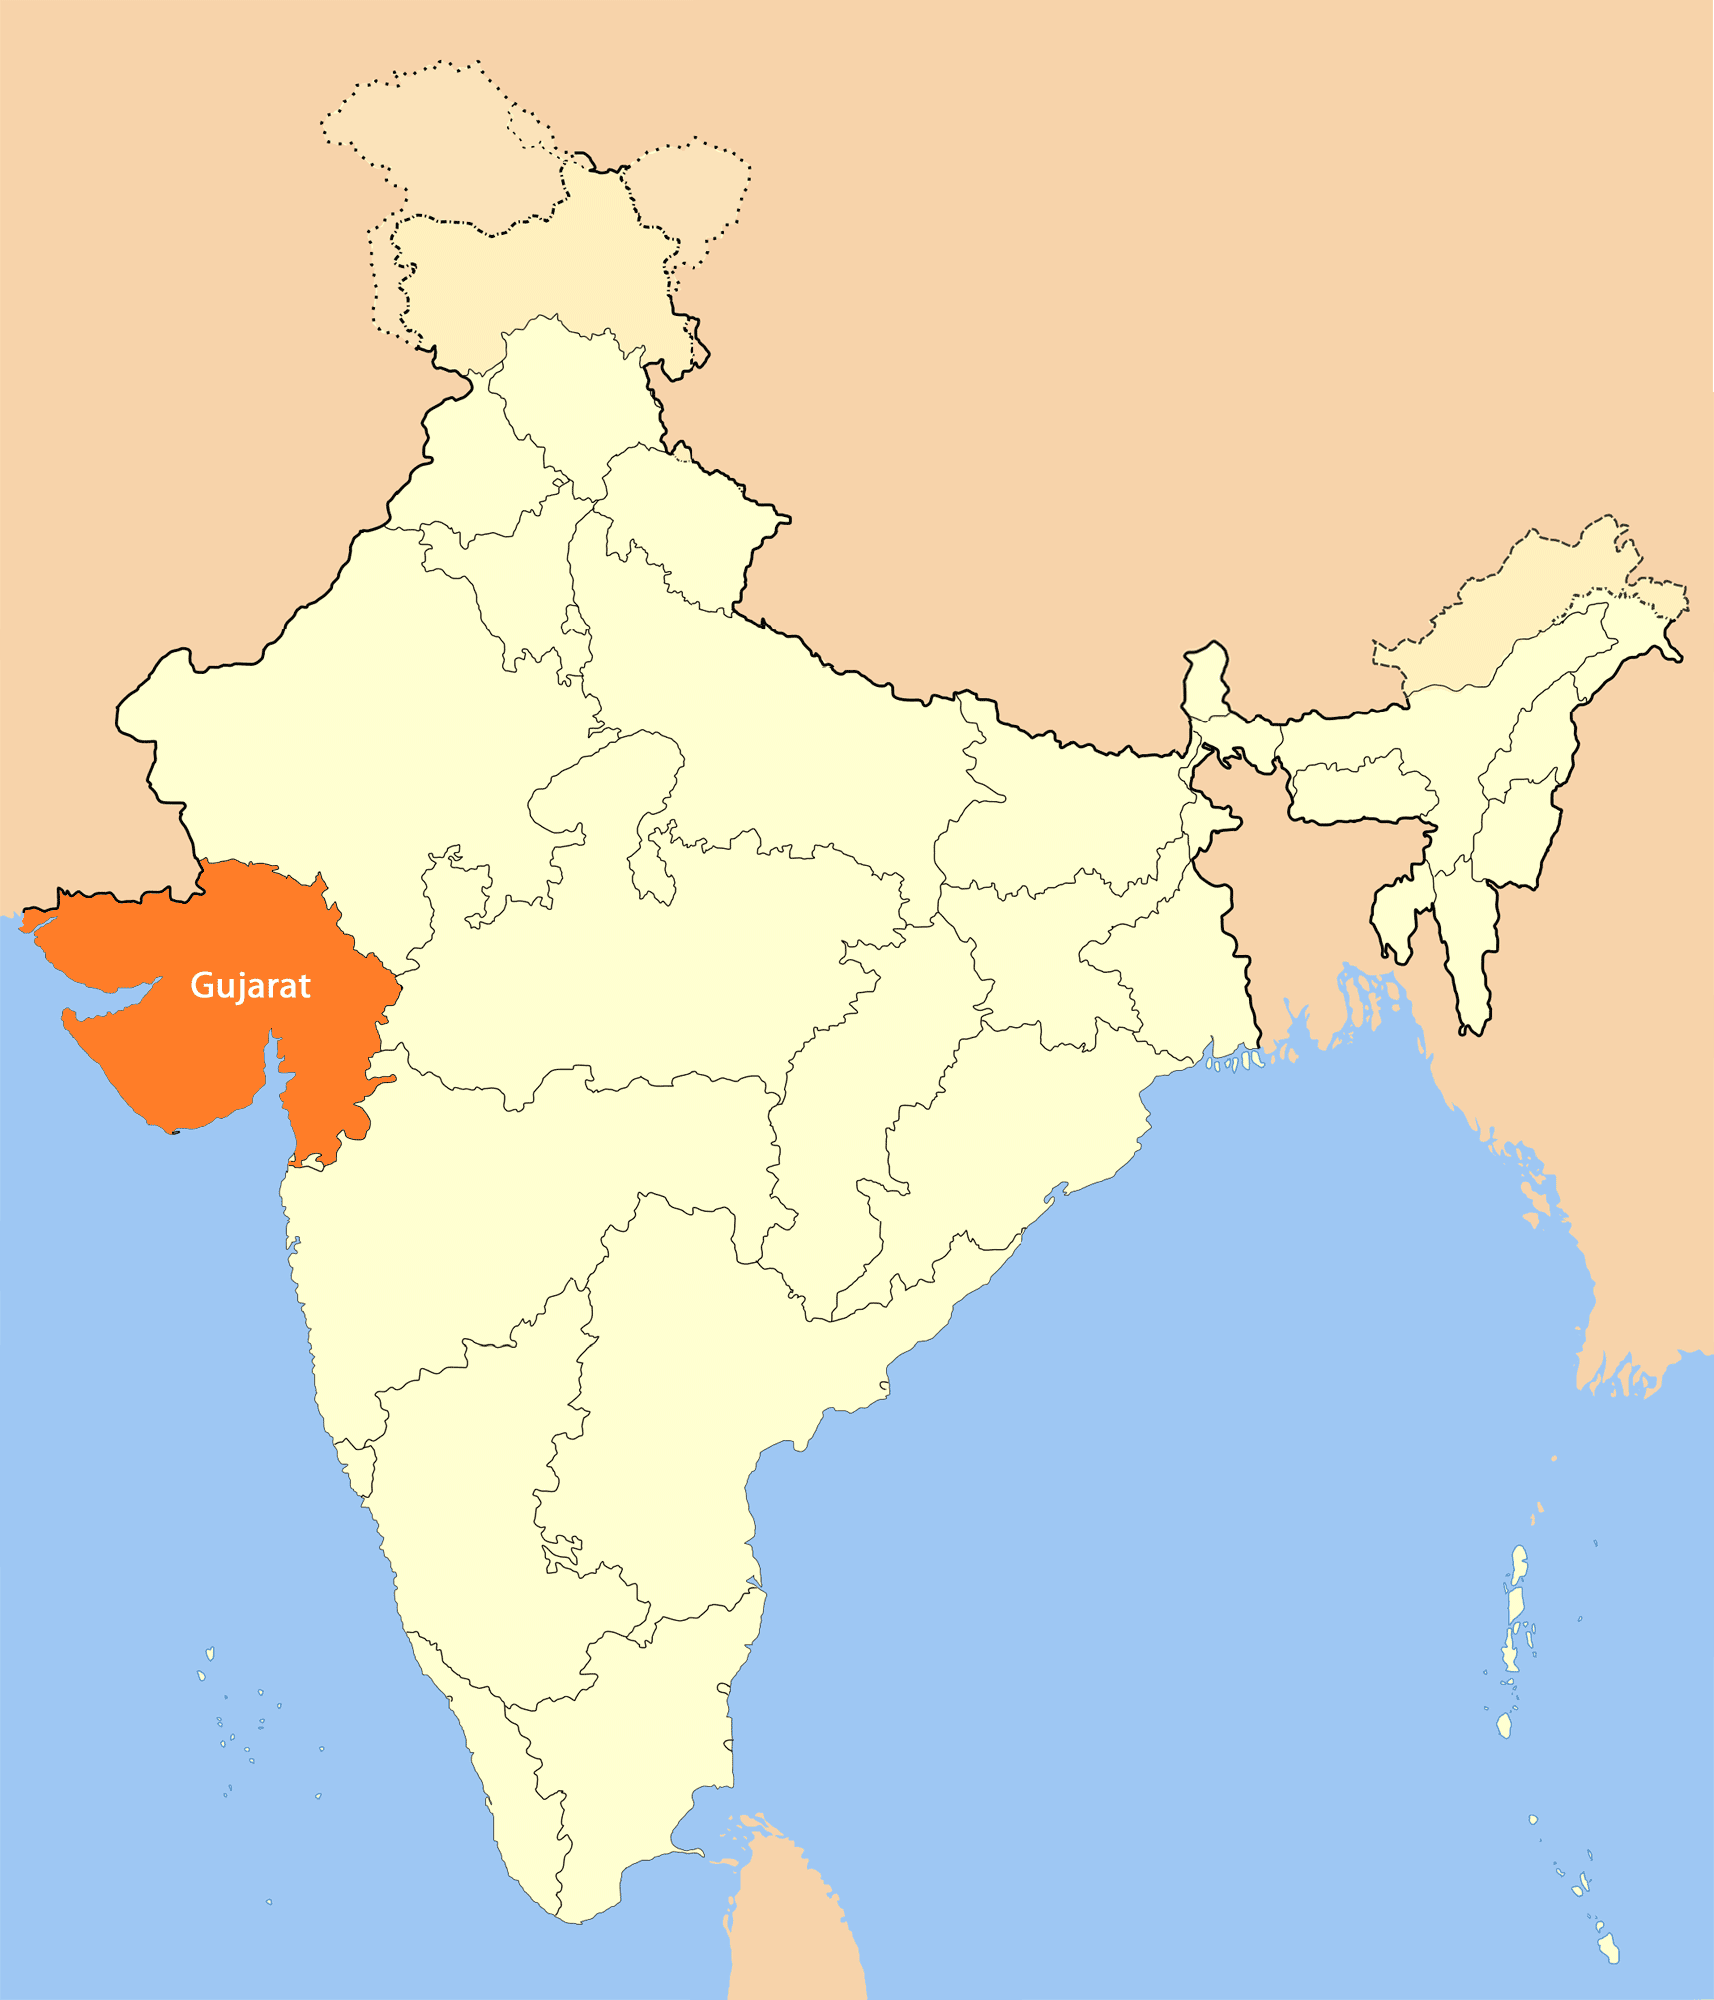 Location Map of Gujarat large map